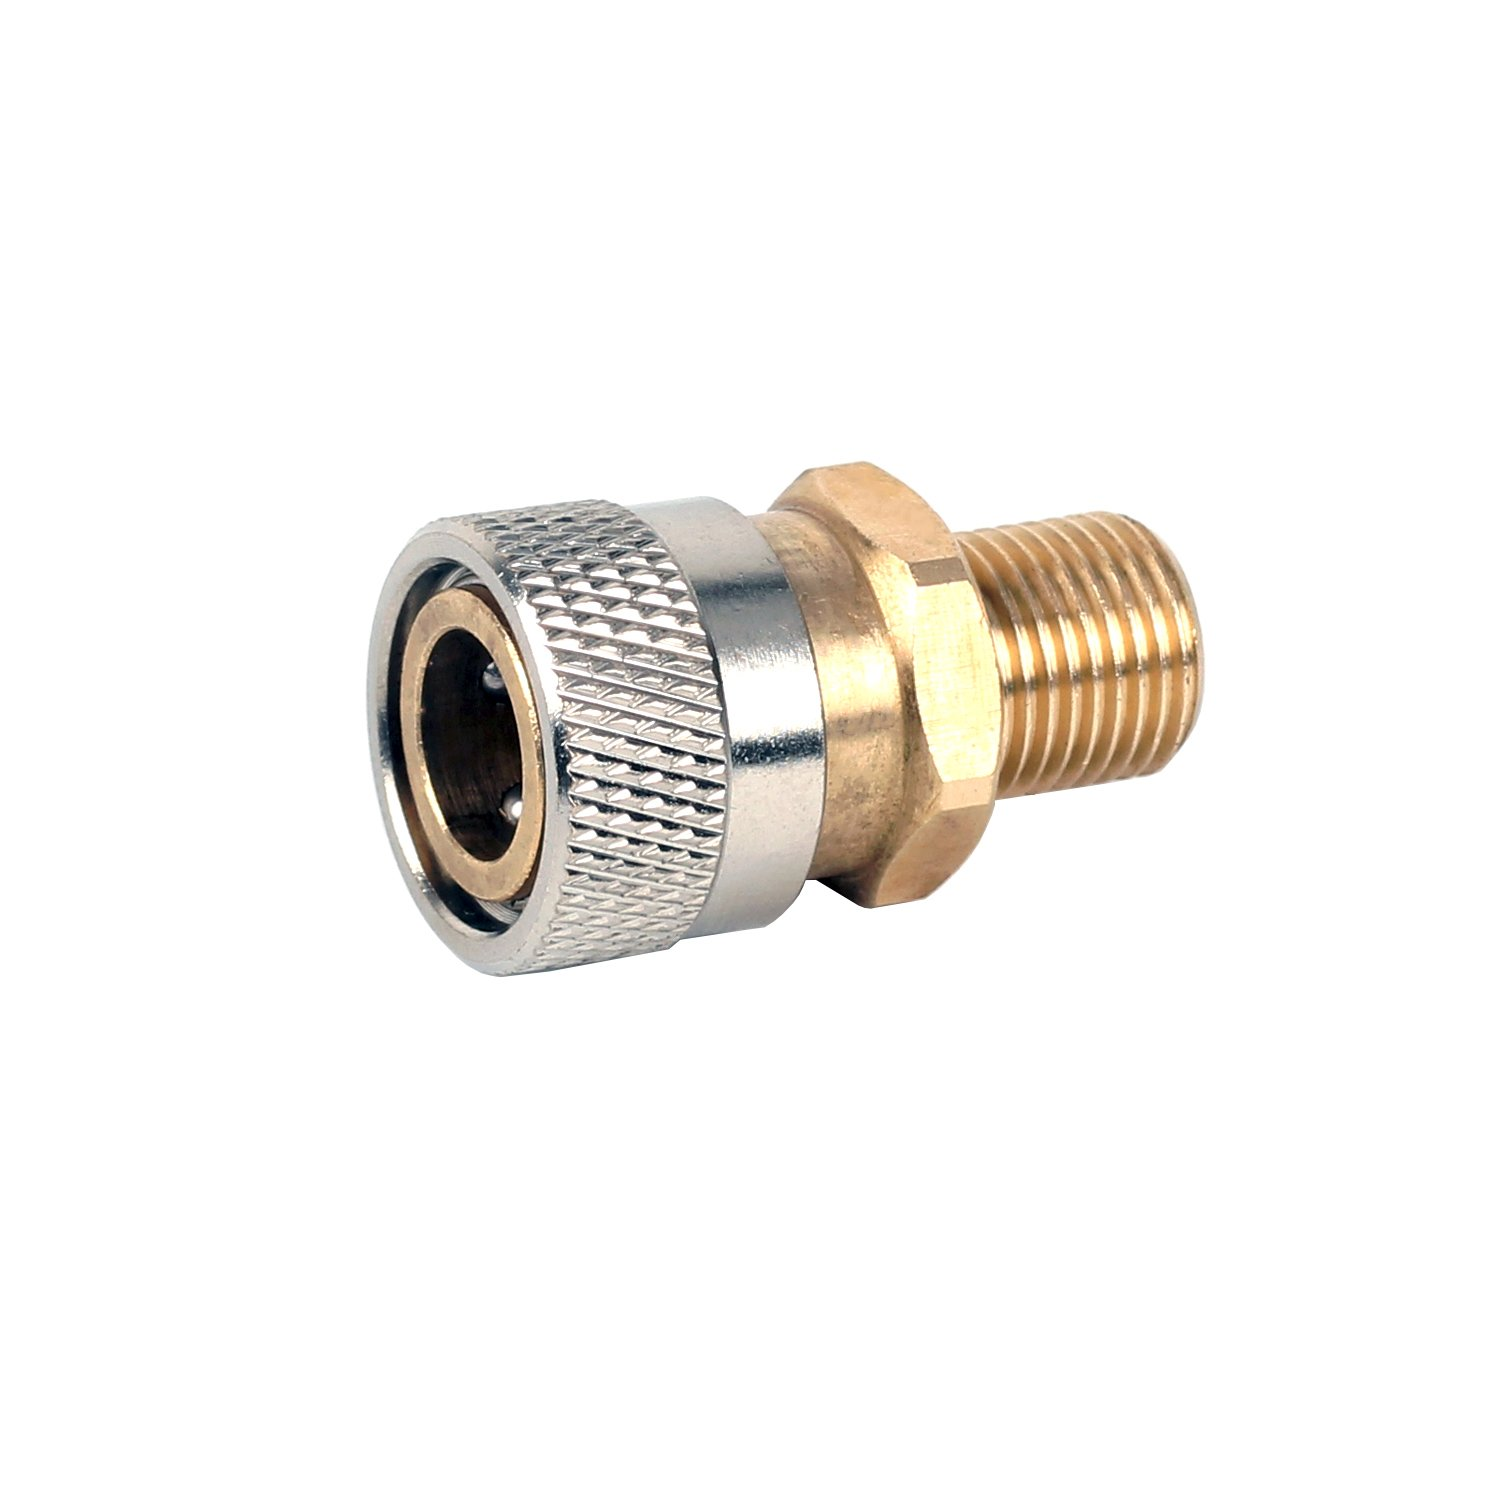 JUFENG Foster Female Quick-Disconnect to 1/8 BSPP Male Adapter Connector, 5000 PSI